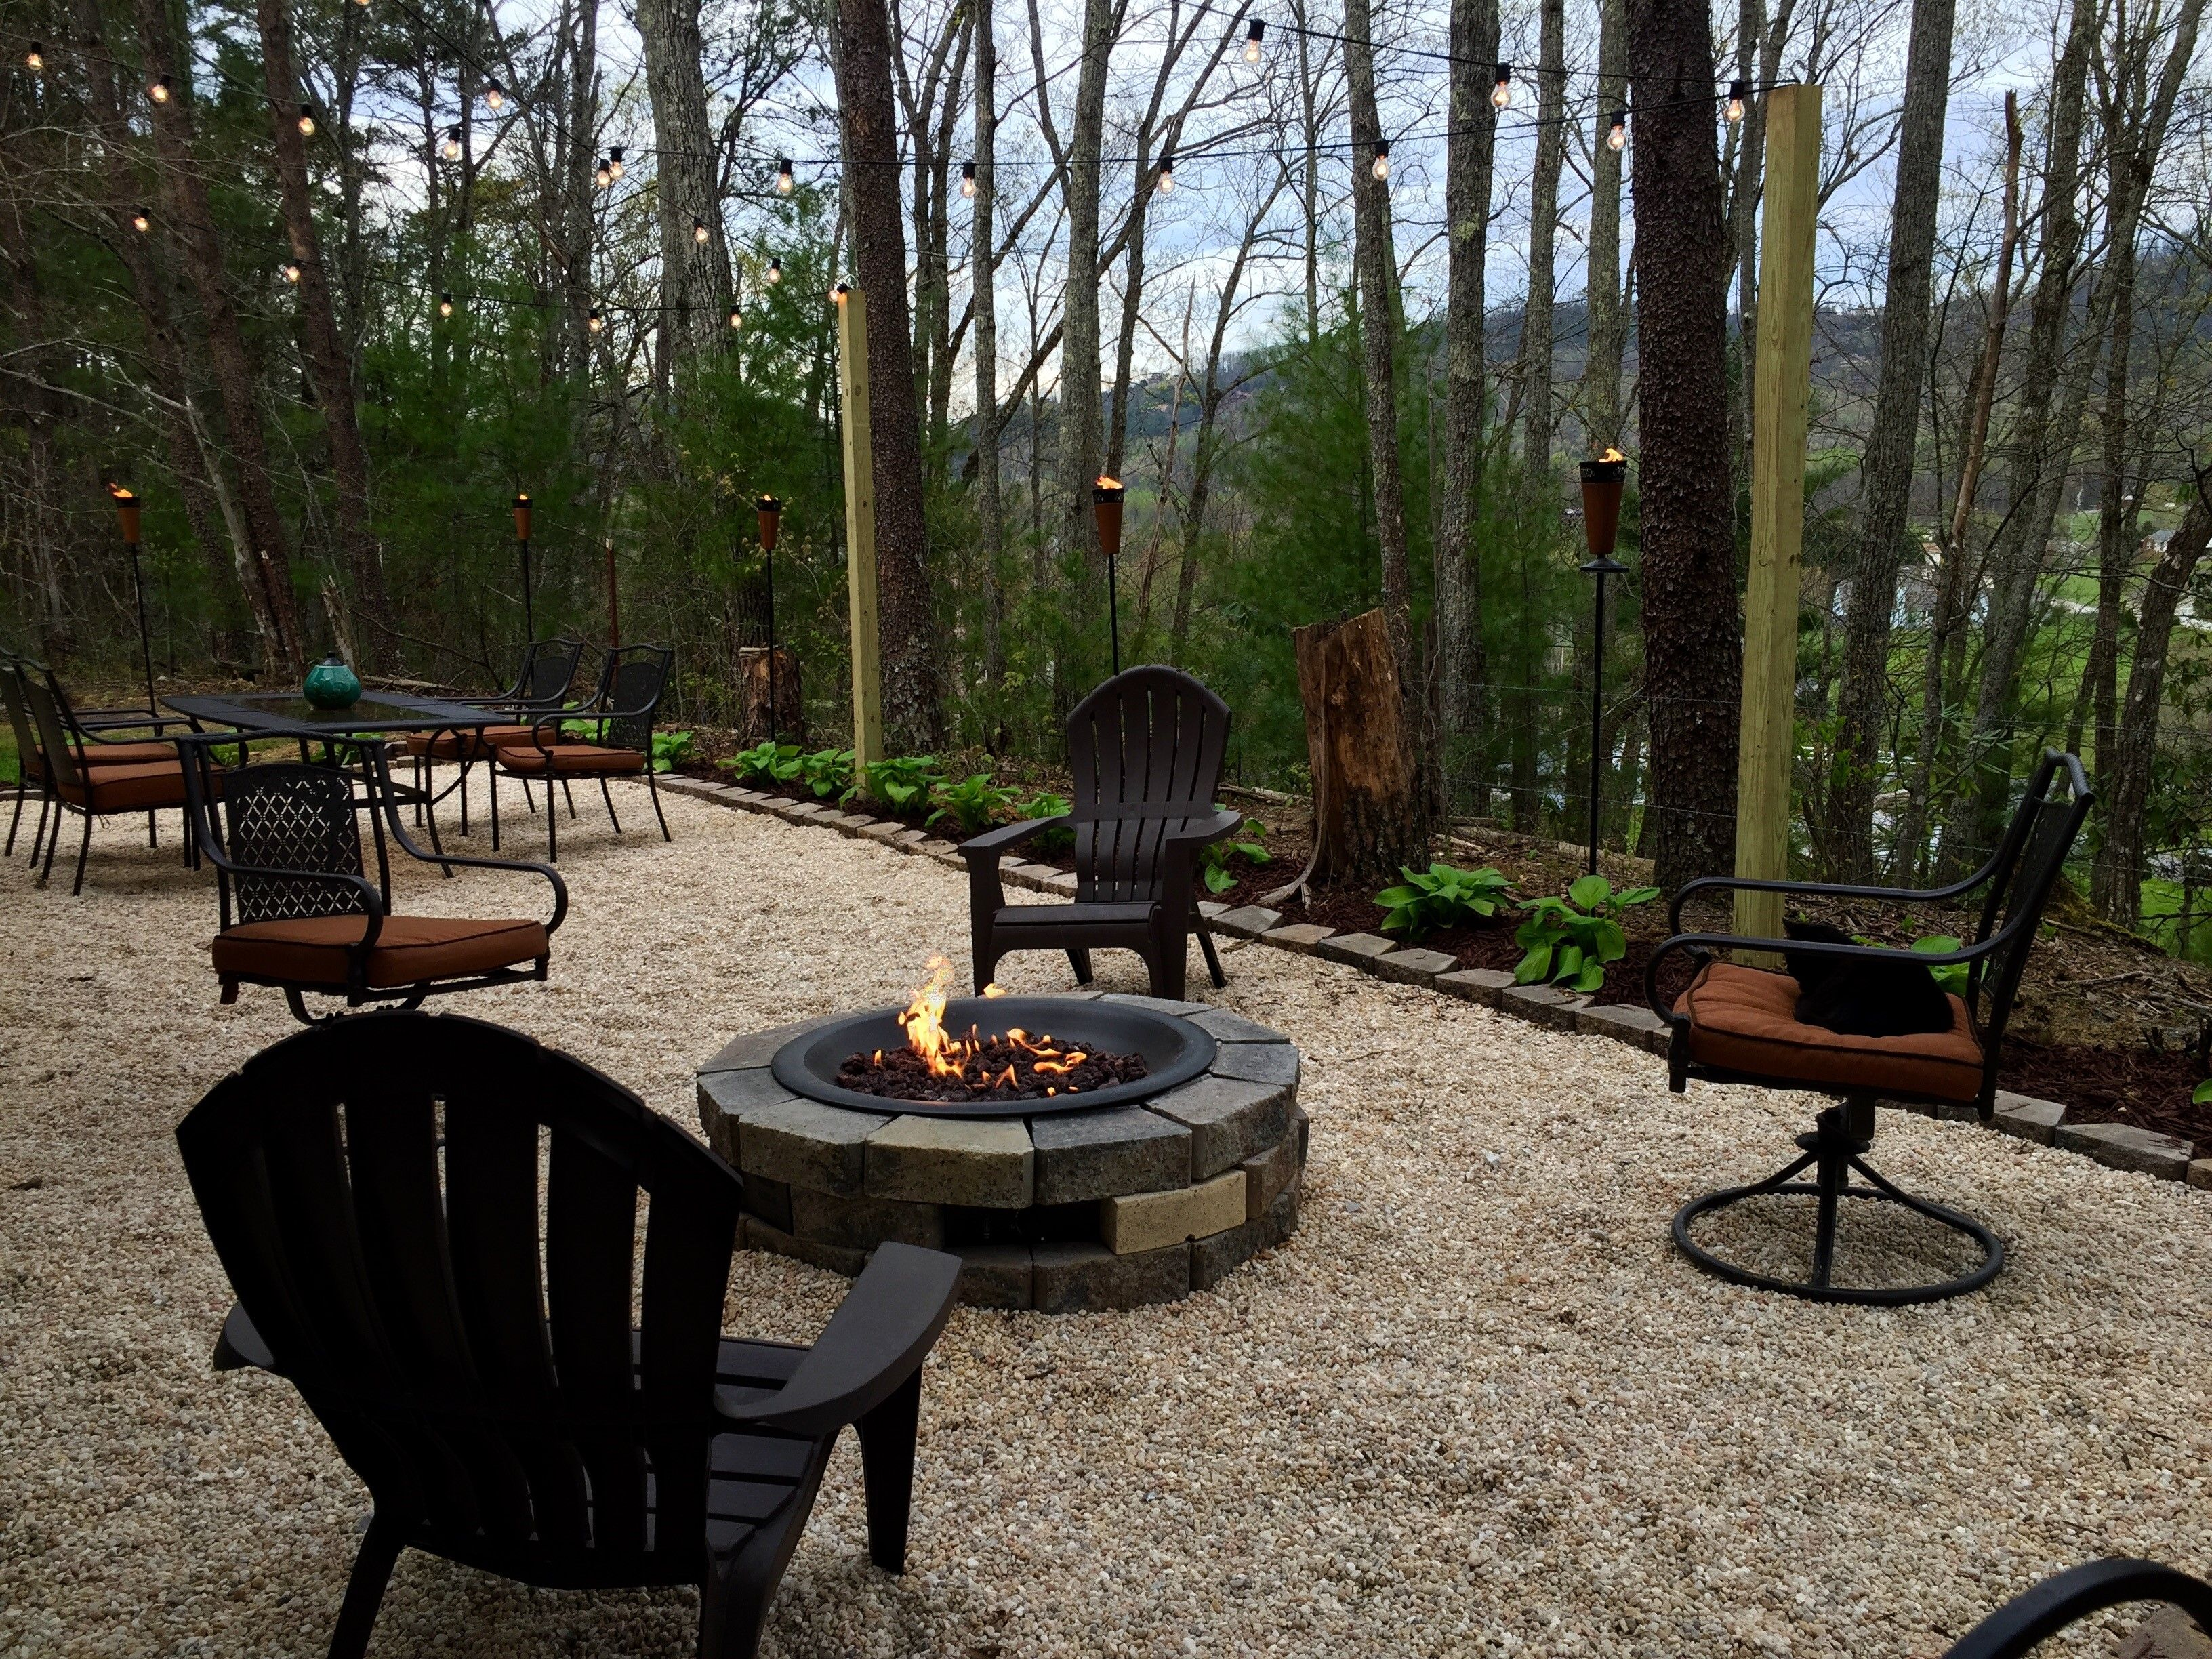 Our Patio Pea Gravel Gas Fire Pit Cafe Lights Fire